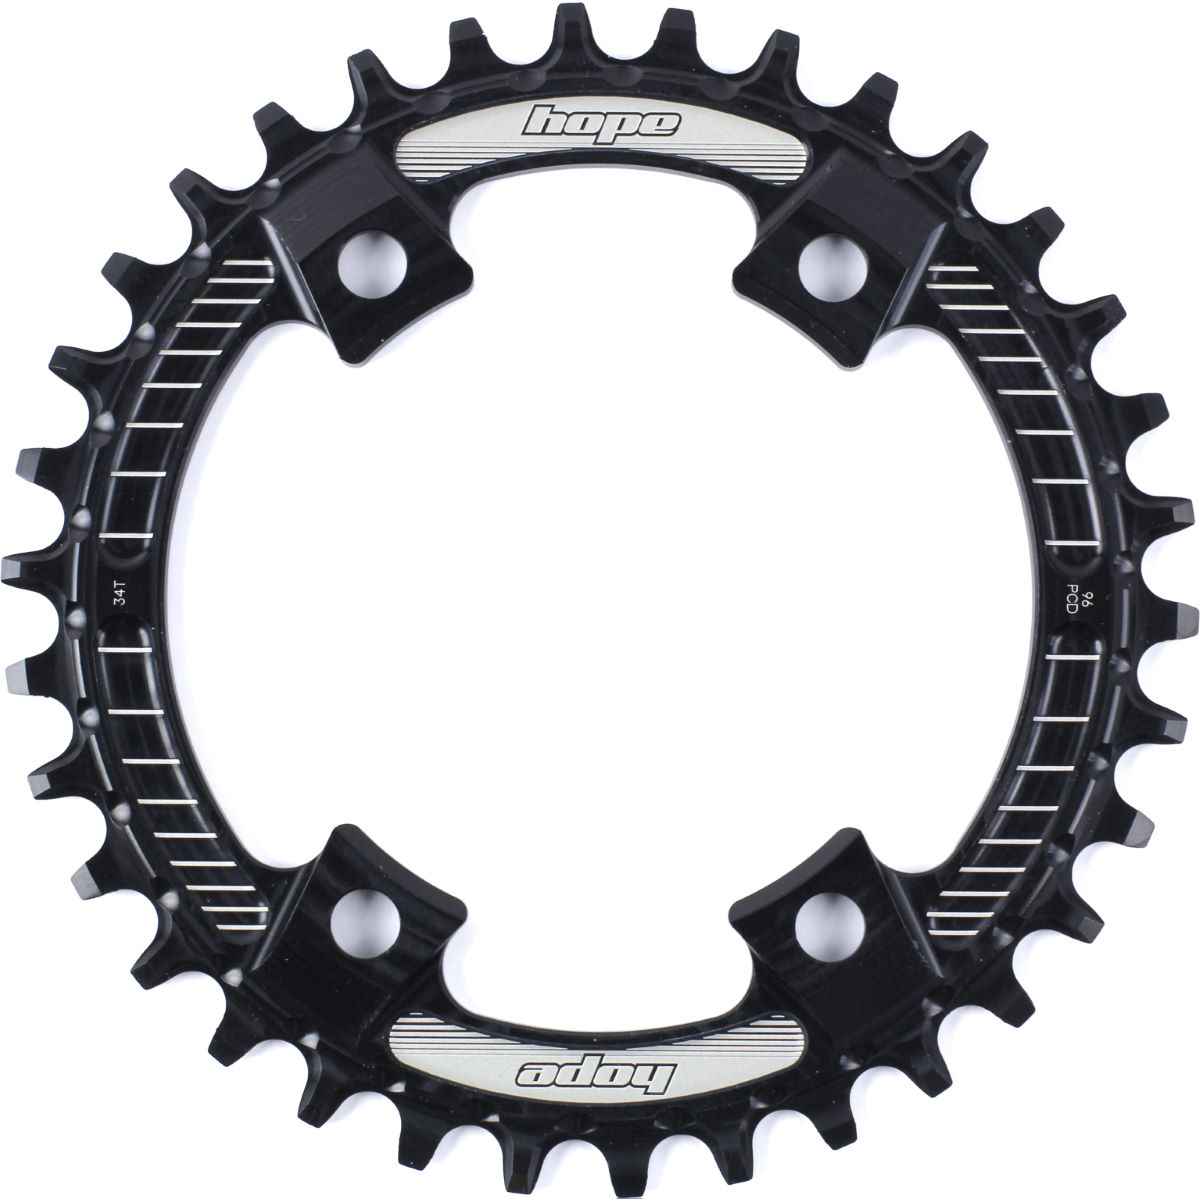 Hope M8000/mt700 Retainer Ring - 34t 9/10/11 Speed Black  Chain Rings